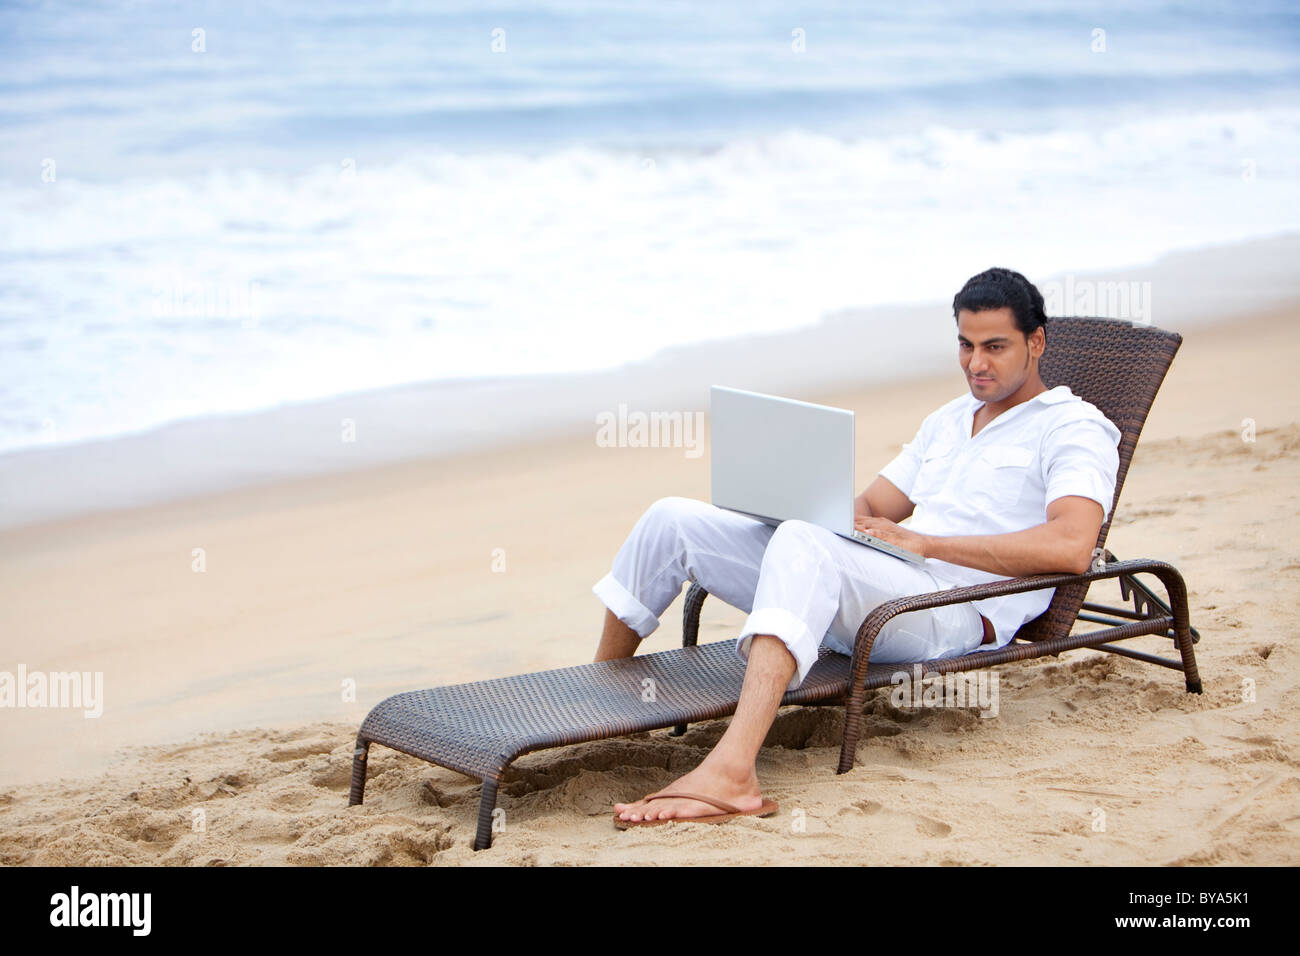 Man with a laptop at a beach Stock Photo